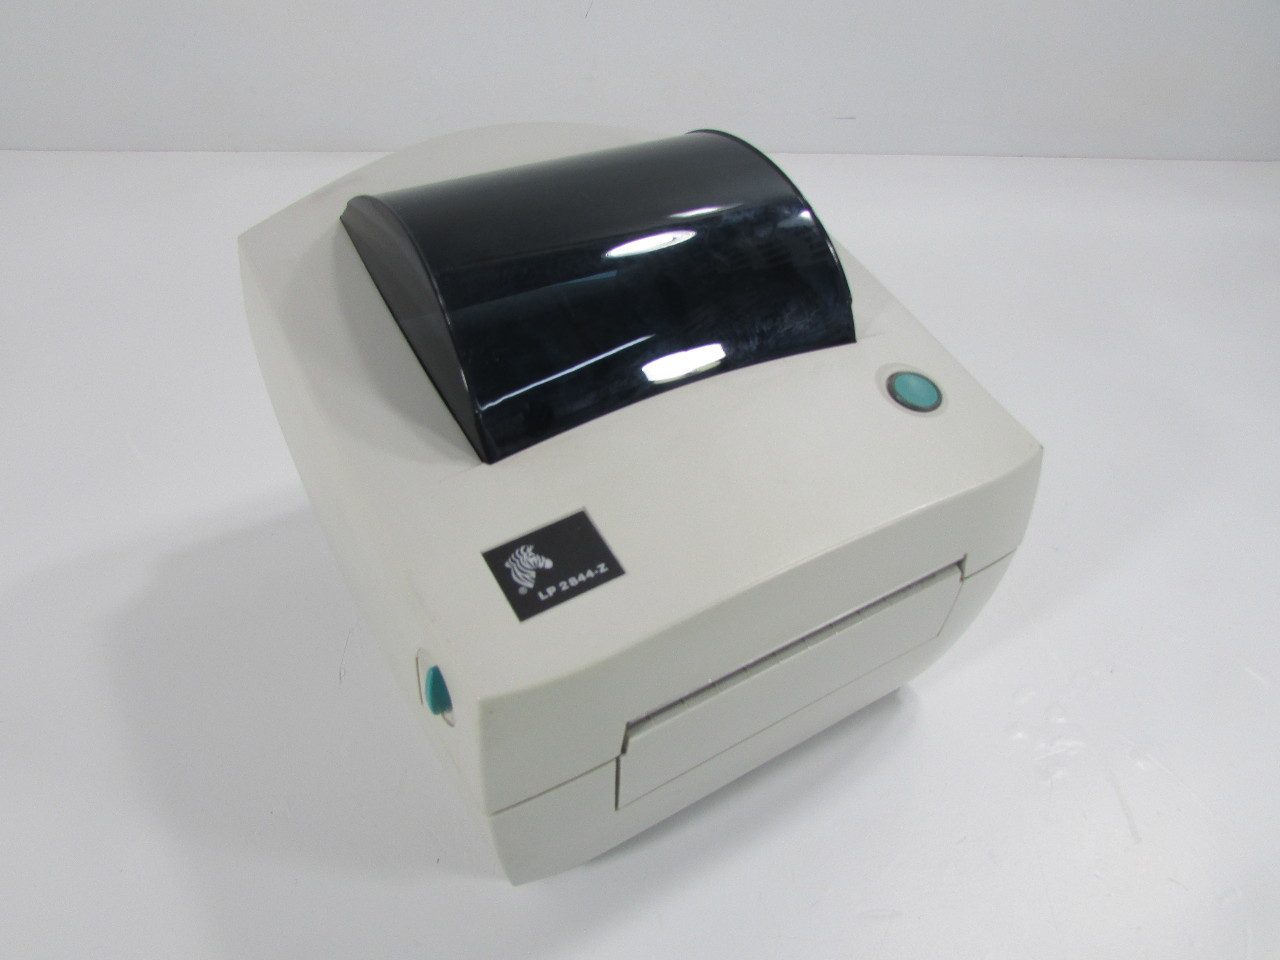 Zebra Printer Drivers Pictures and Ideas on Cooking School Blog